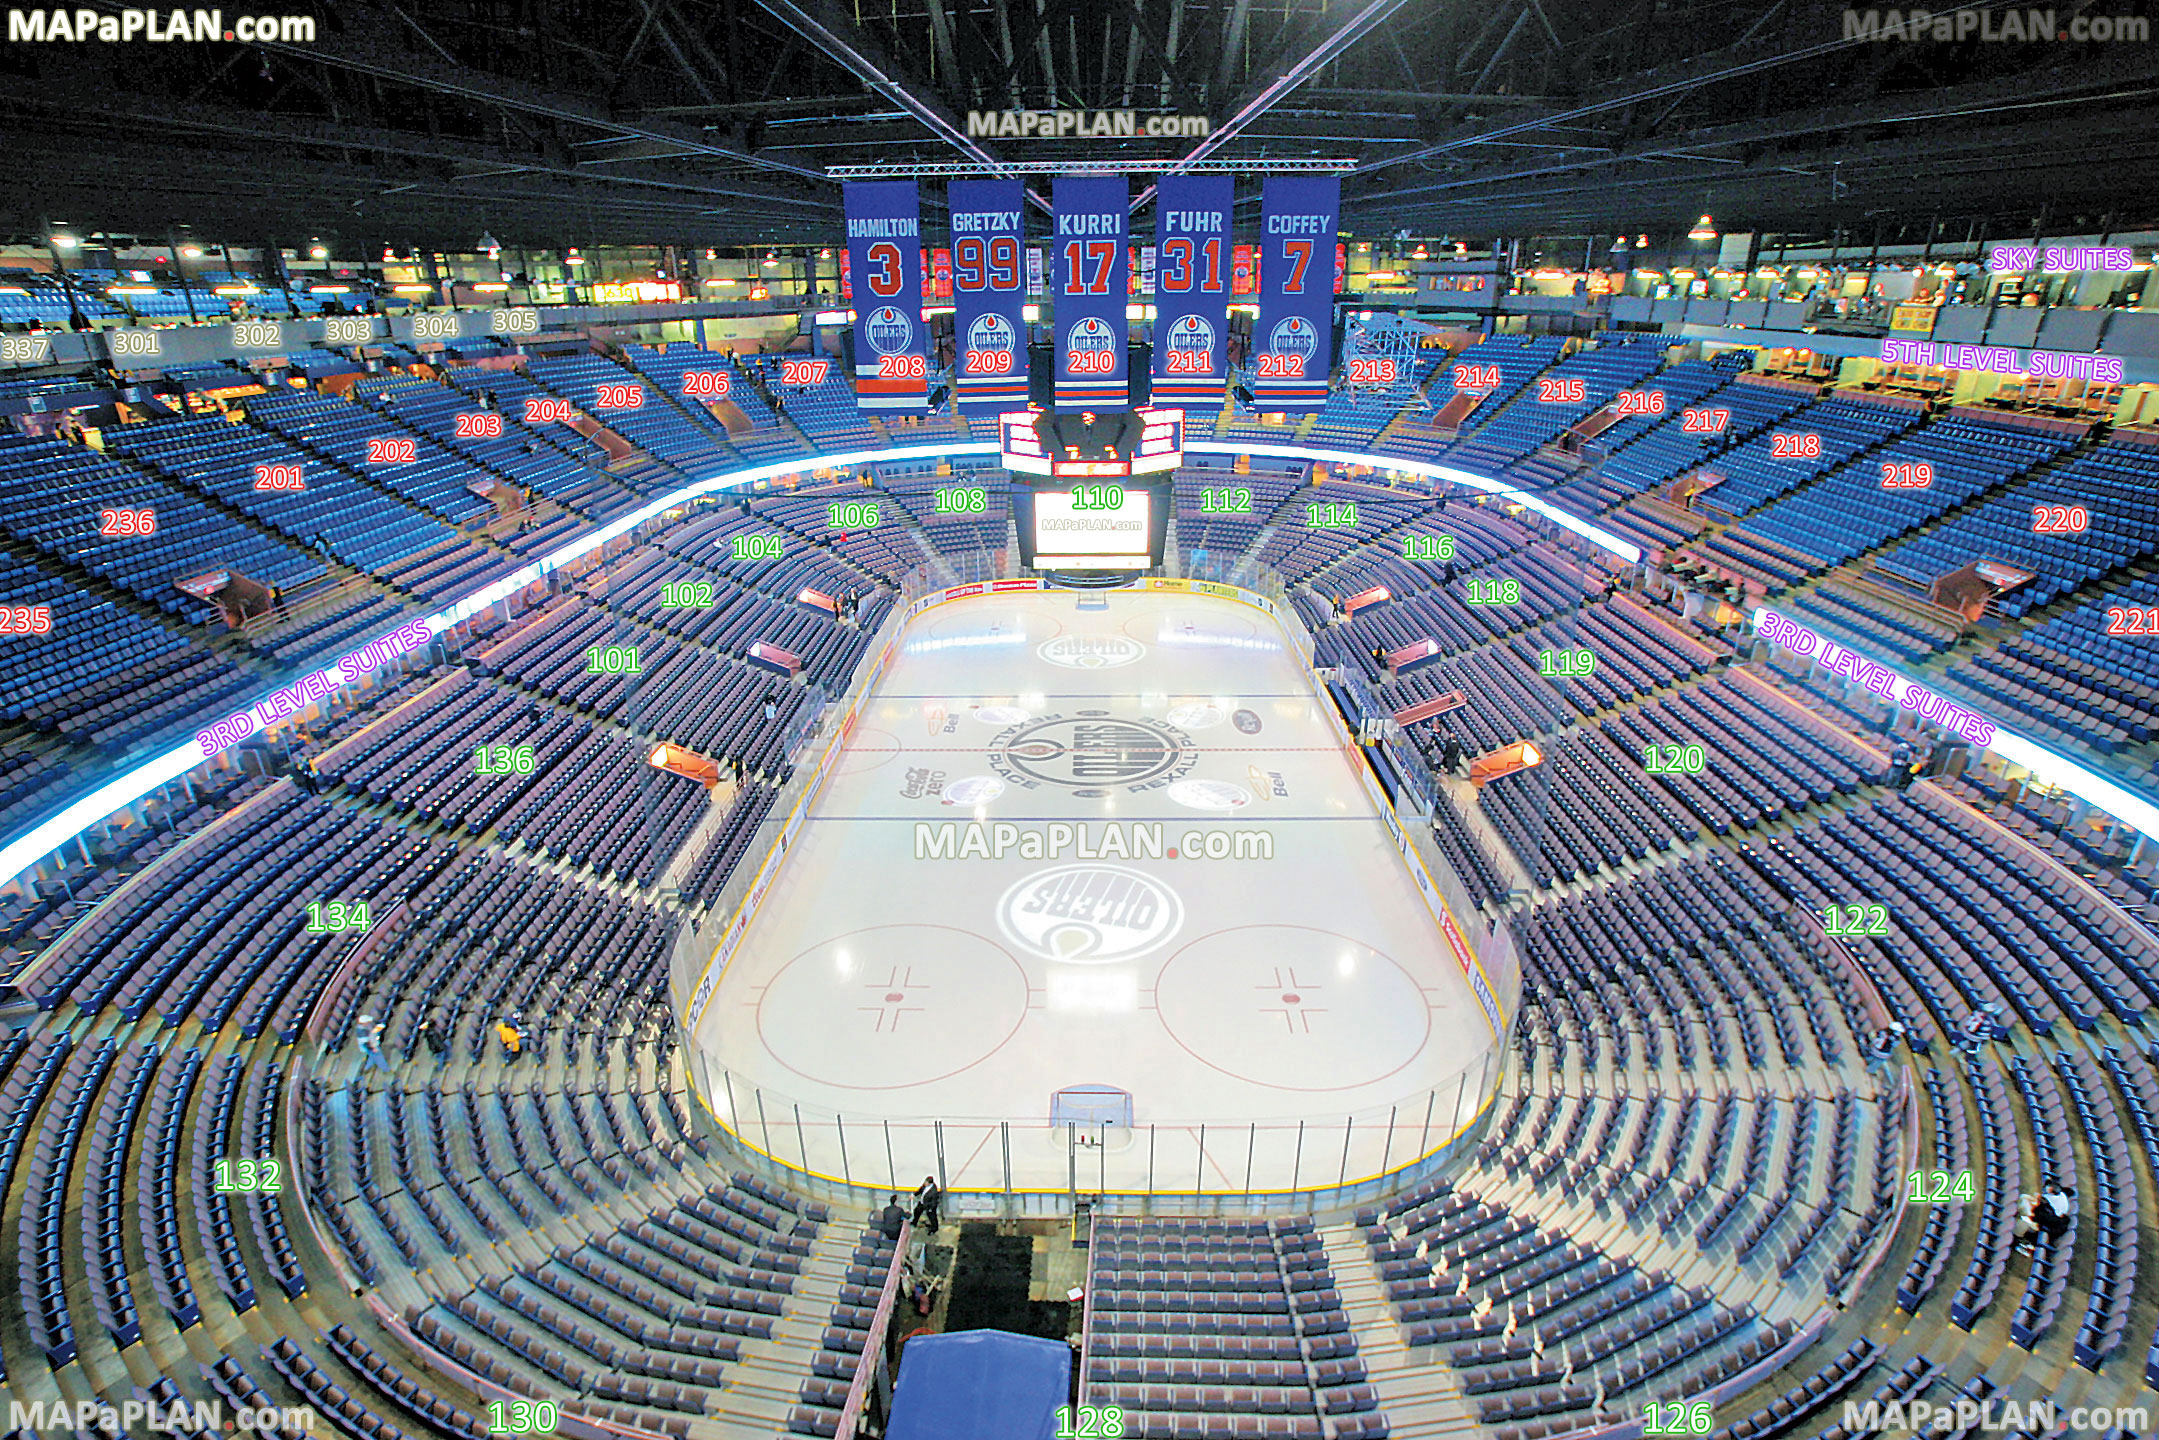 Rexall Place Map Rexall Place Edmonton seat numbers detailed seating plan  Rexall Place Map